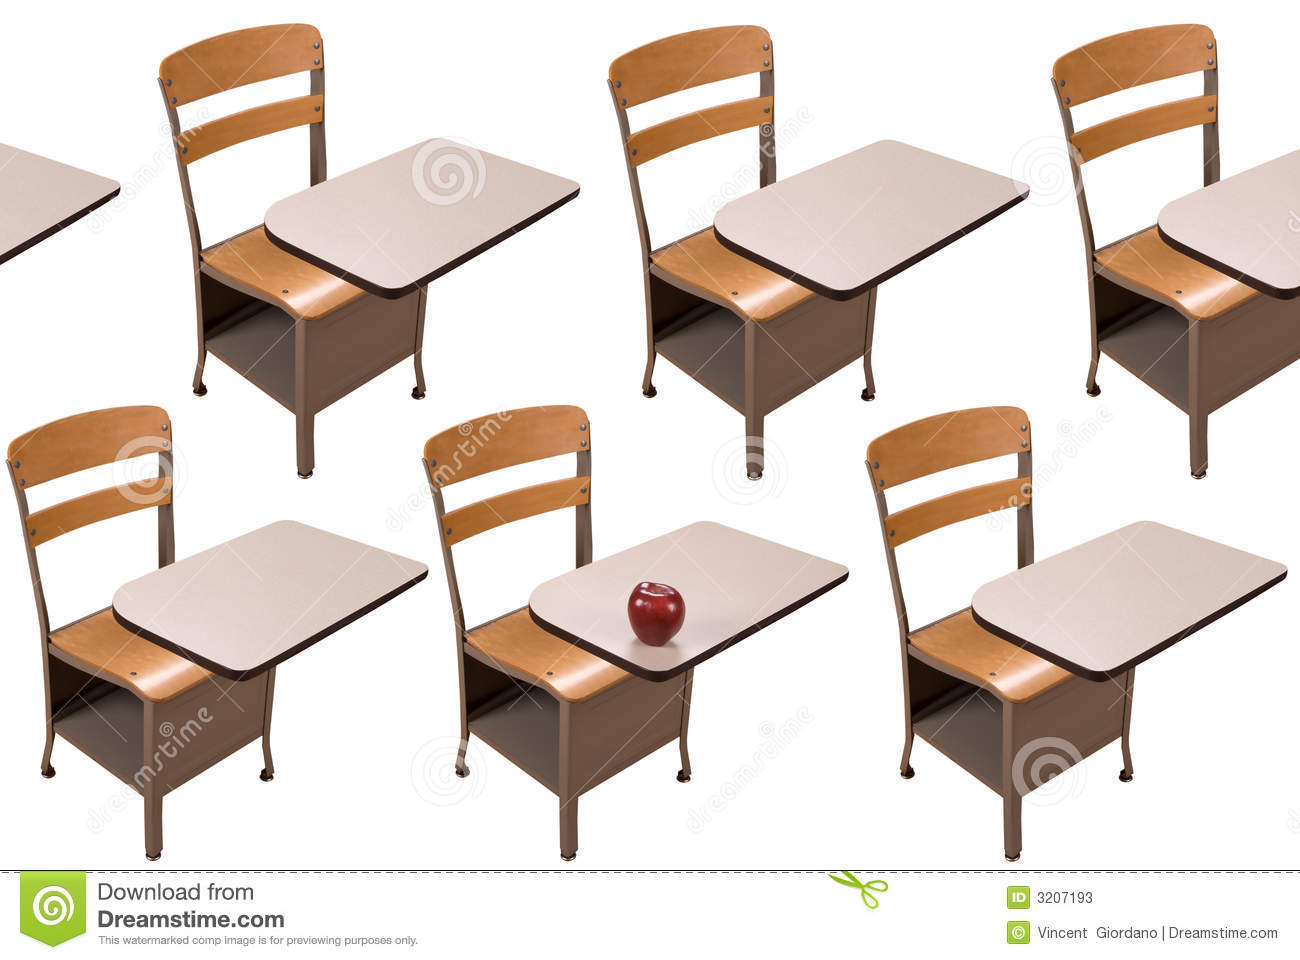 Desk clipart school table Desk One For And Rows